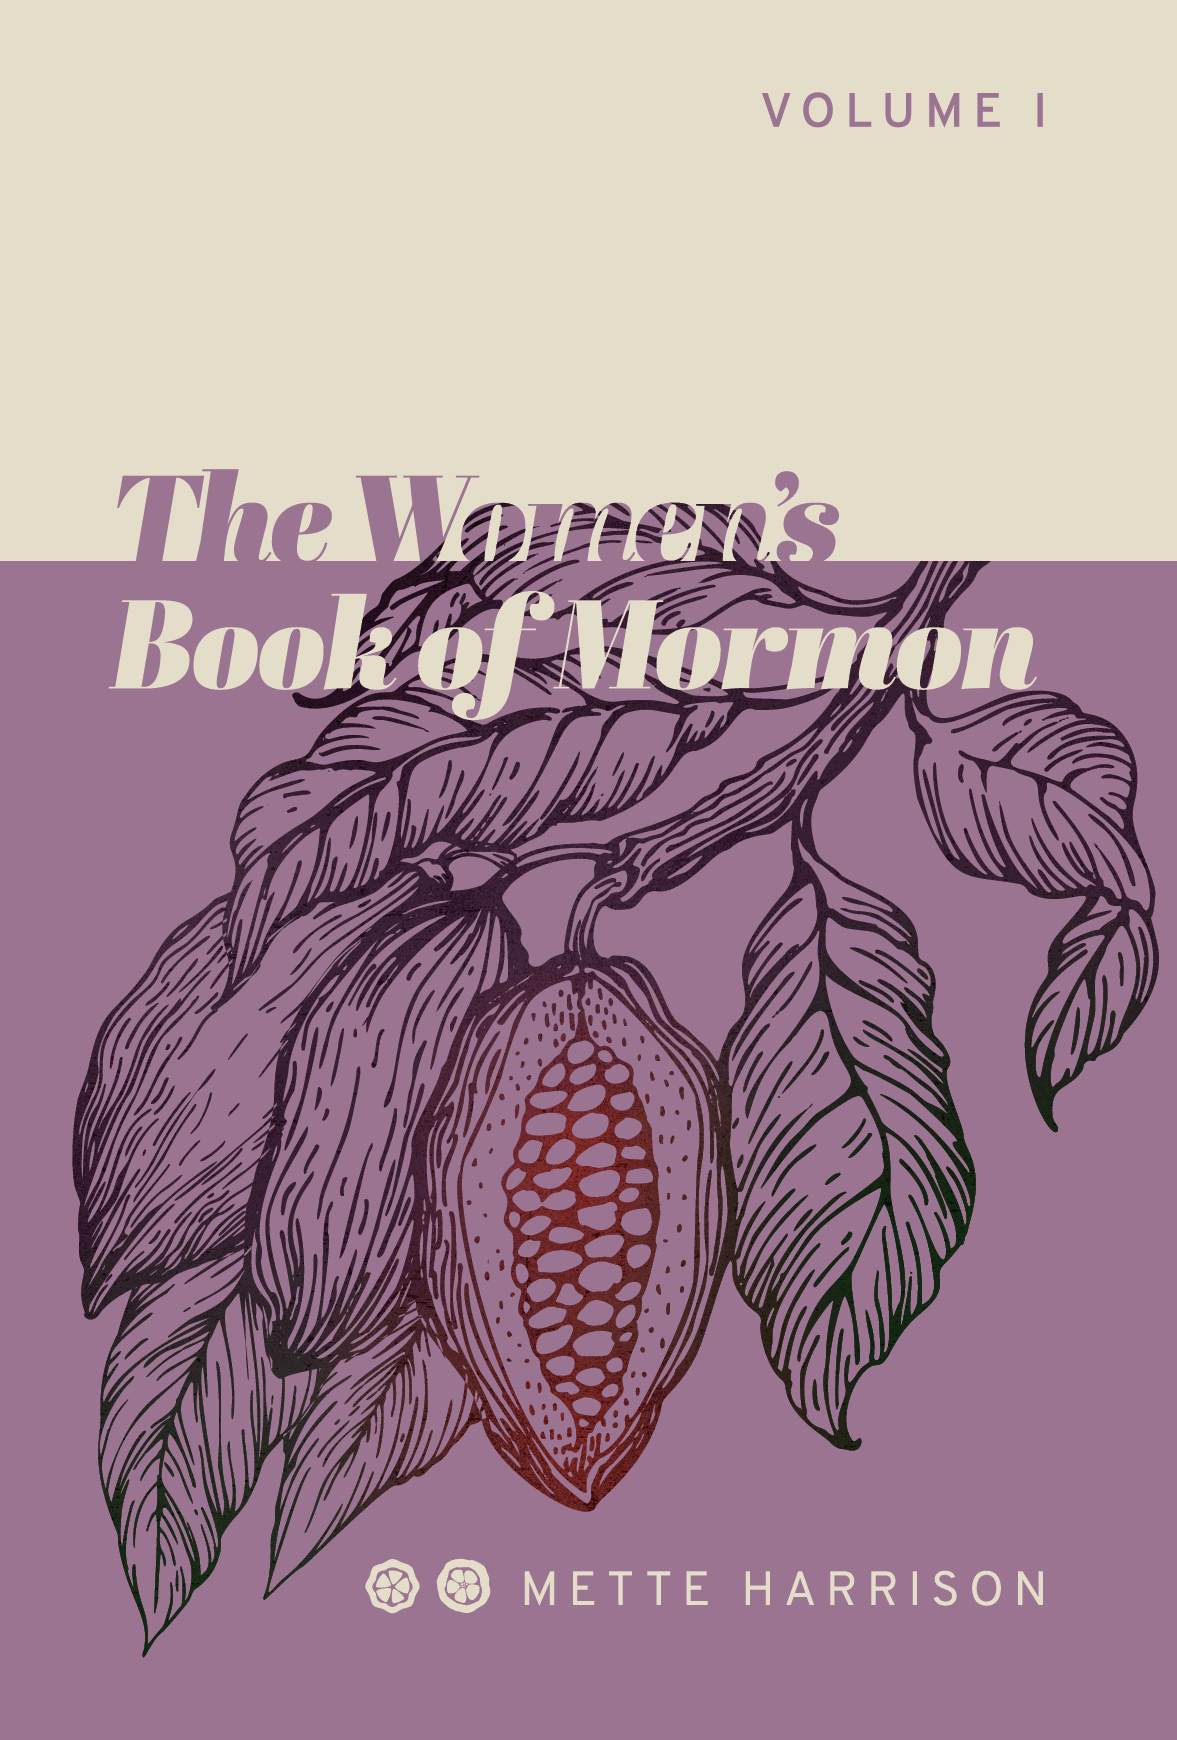 The Women's Book of Mormon (Vol. 1 available 1/17/2020)